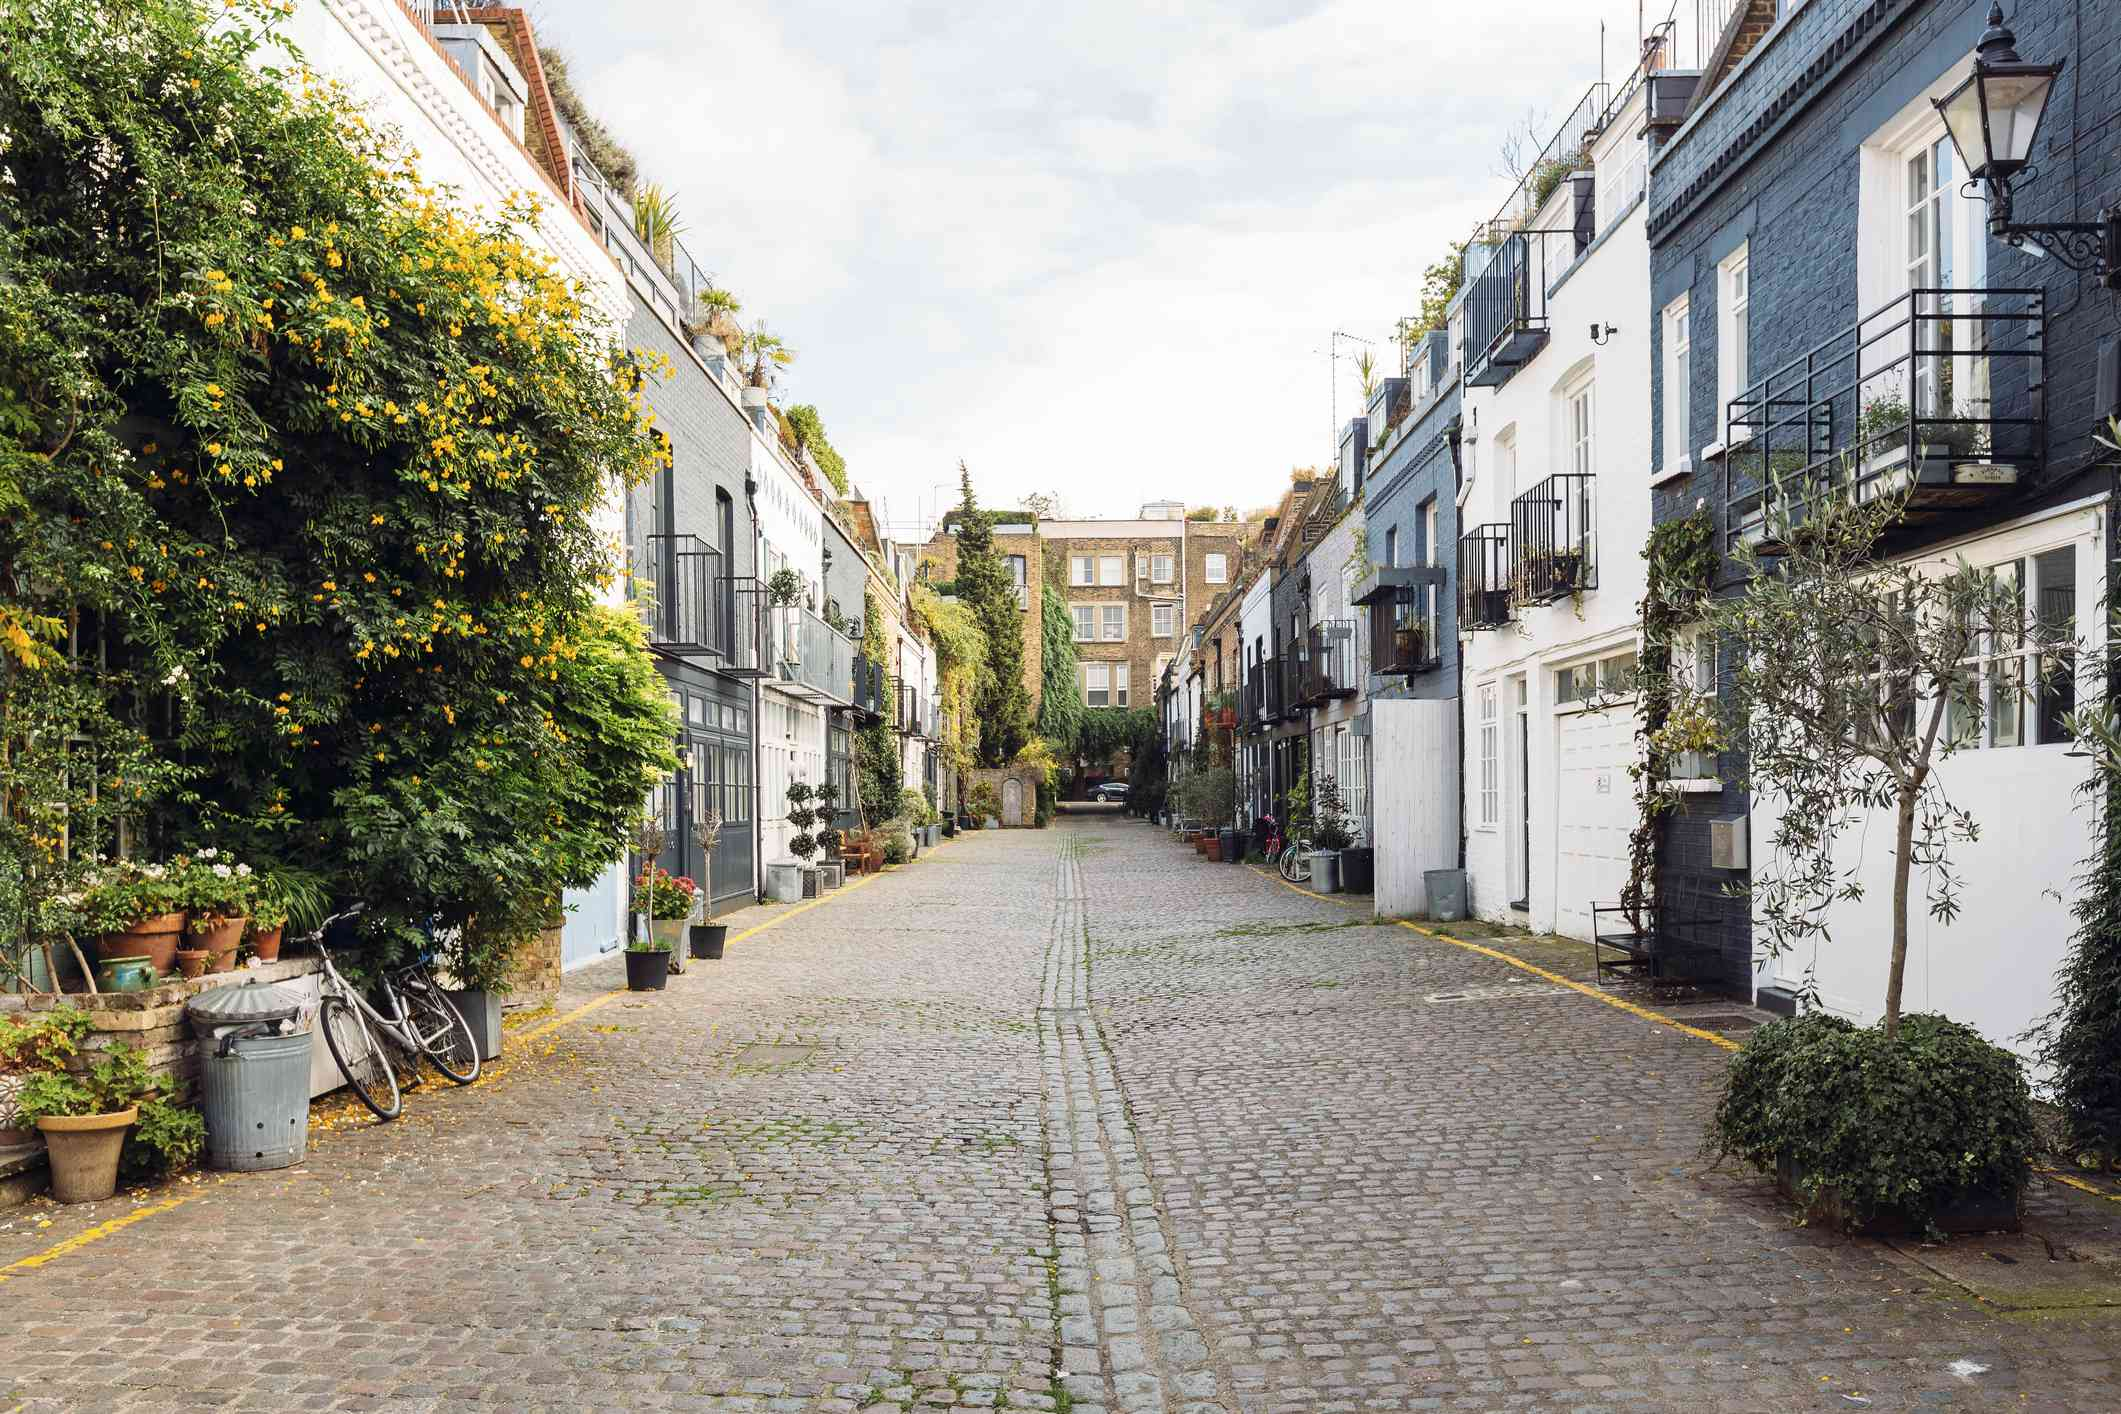 Calm street with mews houses in Notting Hill, London, Greater London, UK